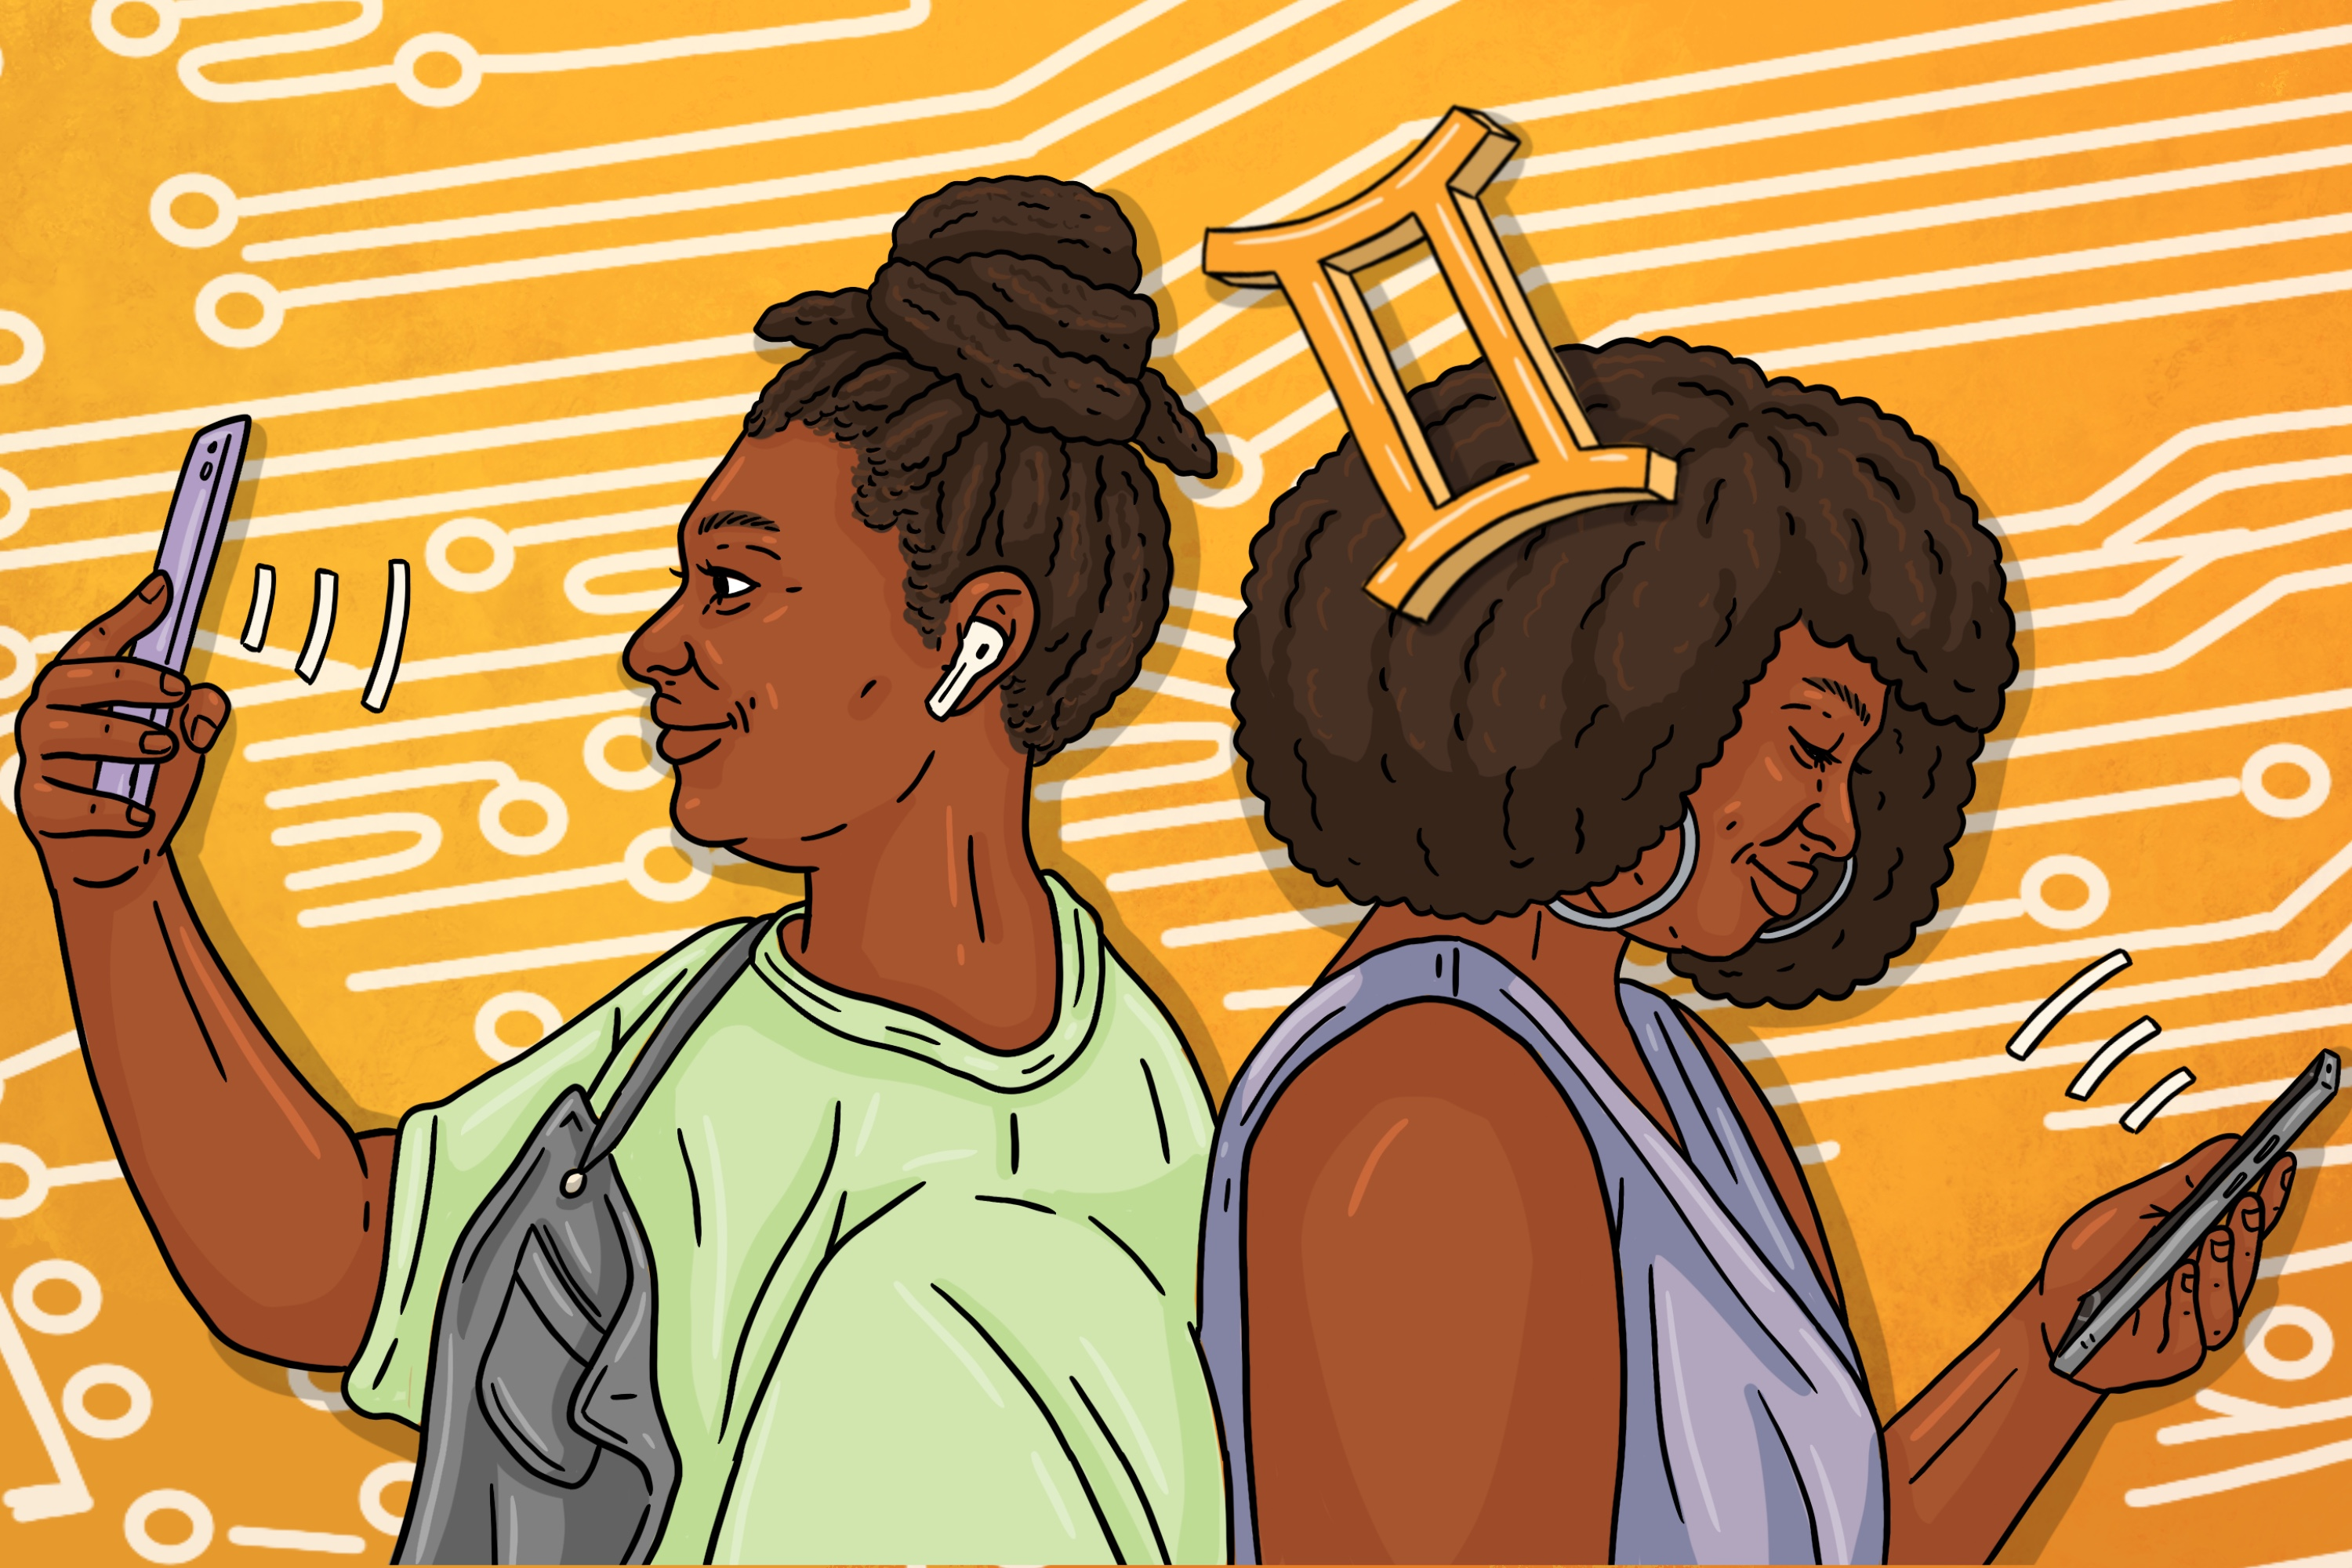 gal-dem monthly horoscopes: the winds of Gemini season are stoking the fires of revolution